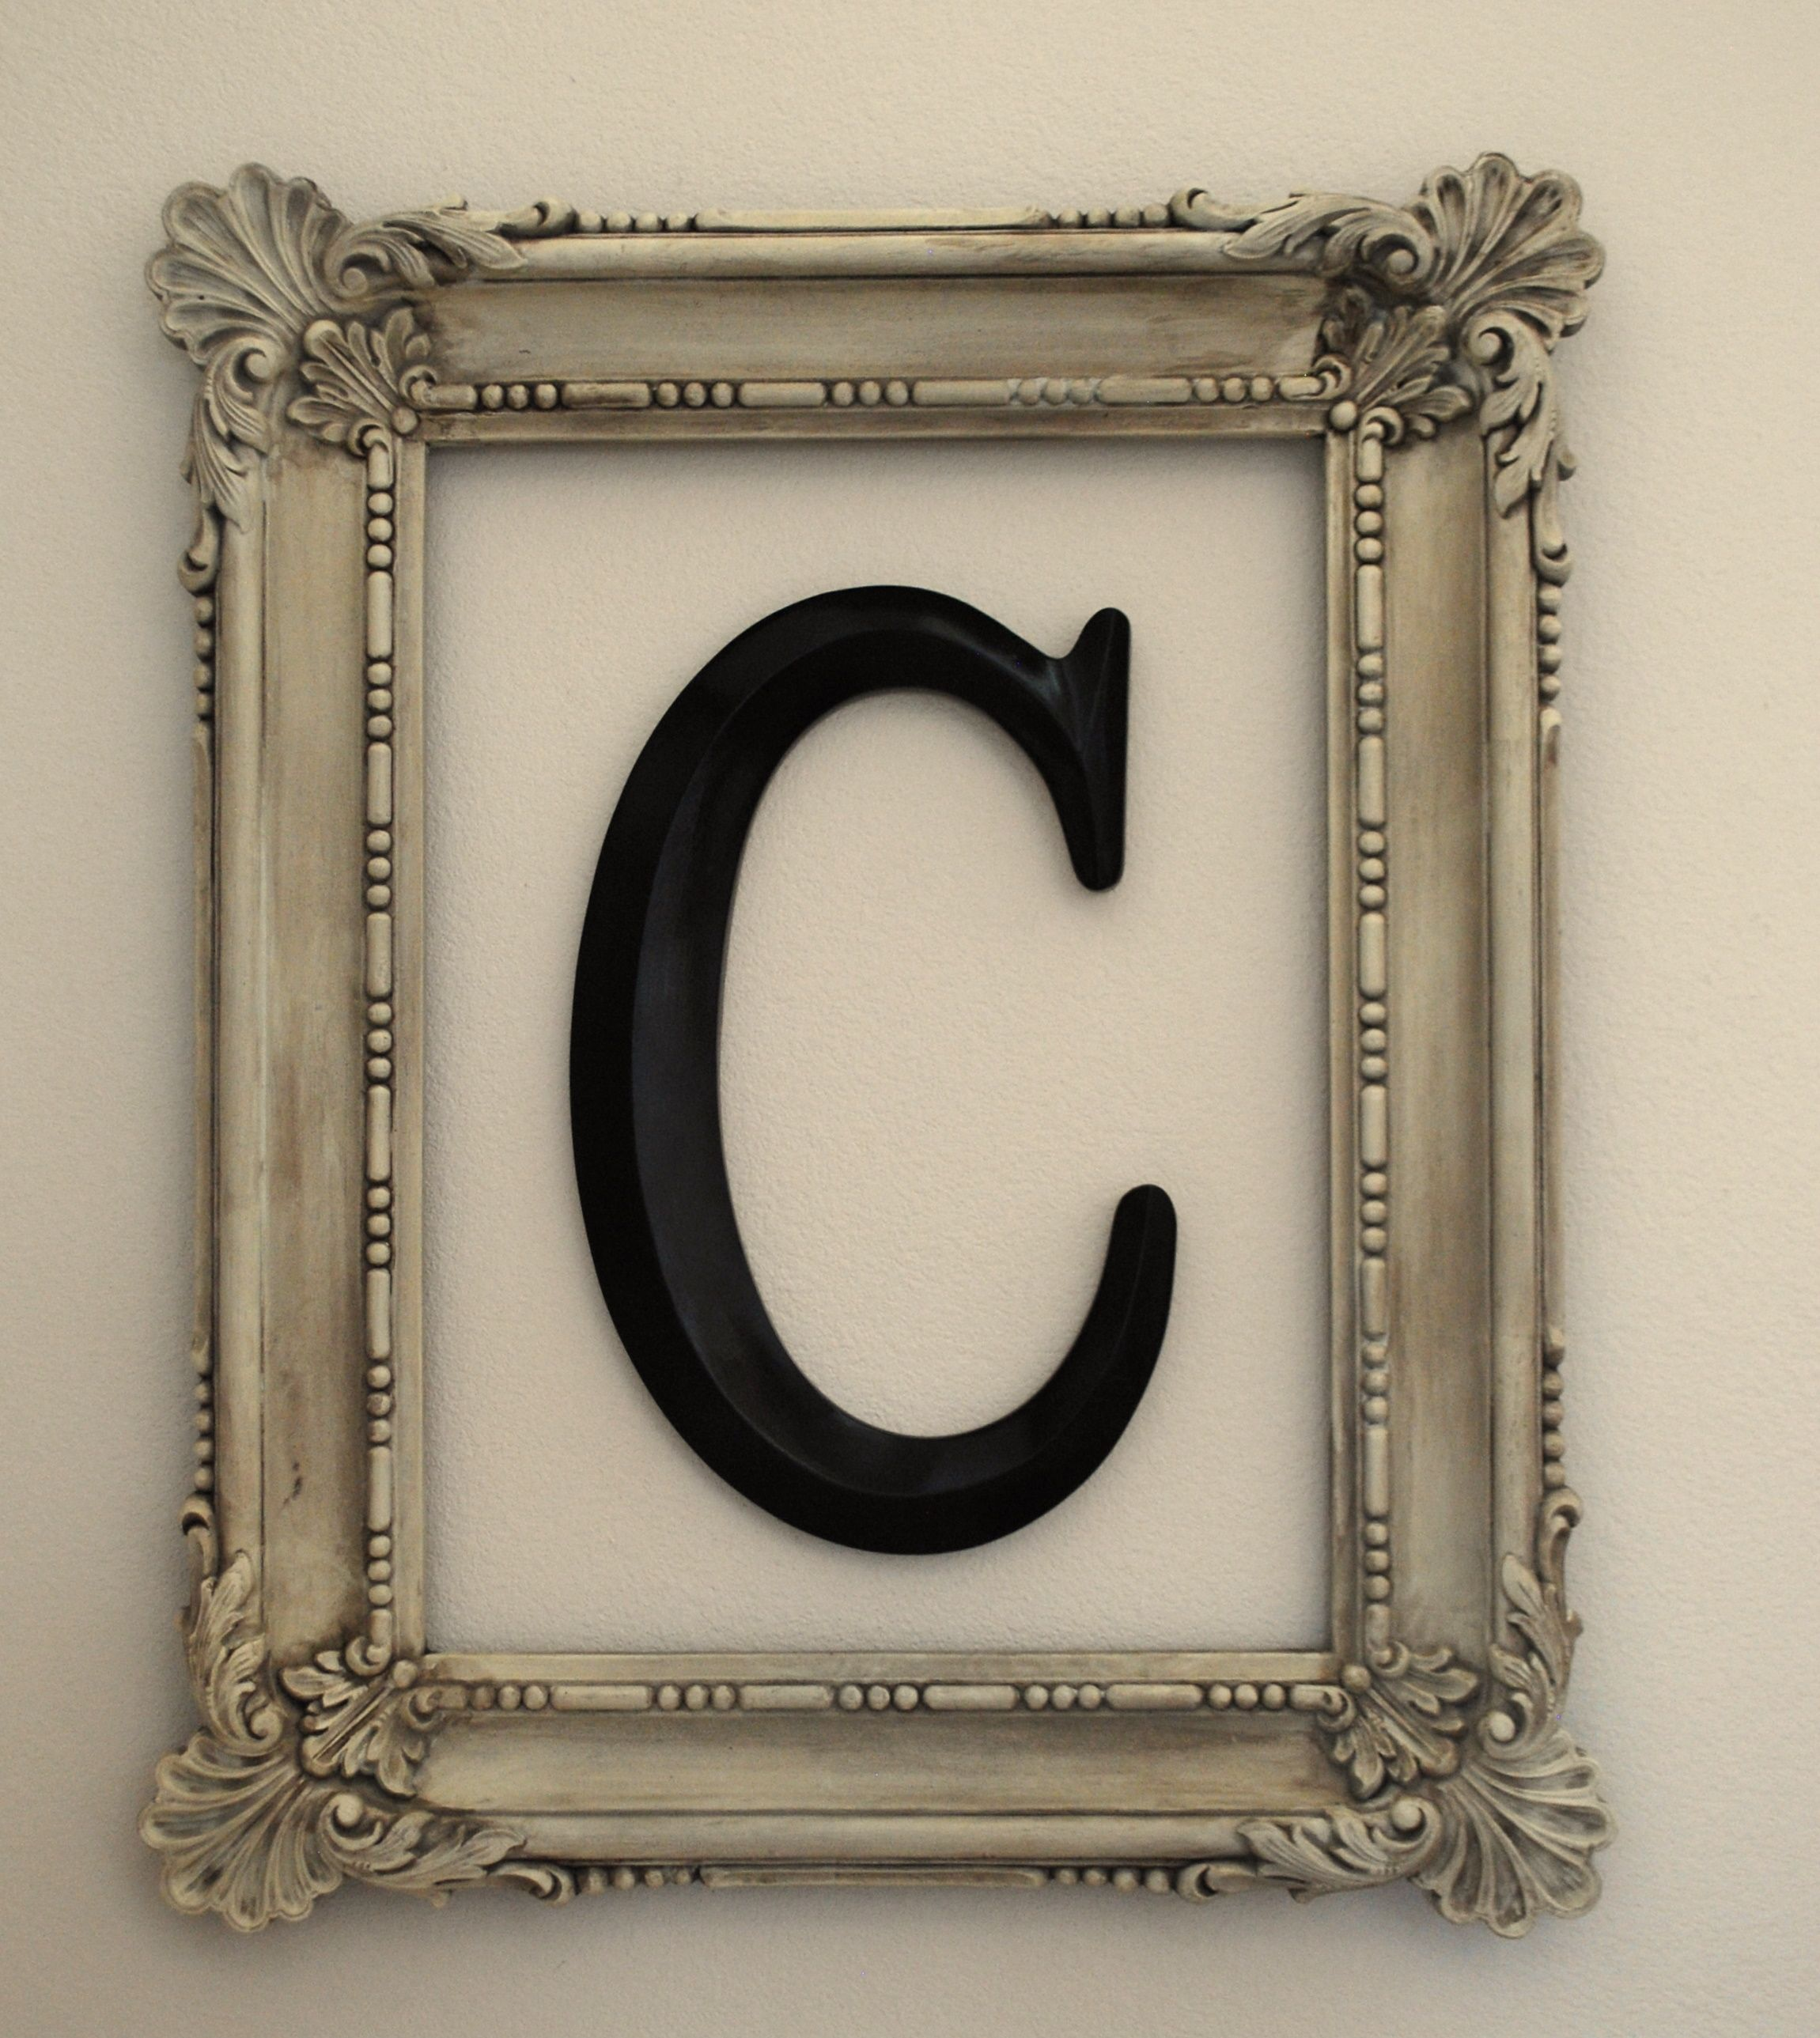 letter c wall decor this is a idea for that frame just sitting 22784 | bdc5e1634e5fd4cabd89968bbdb56e1f